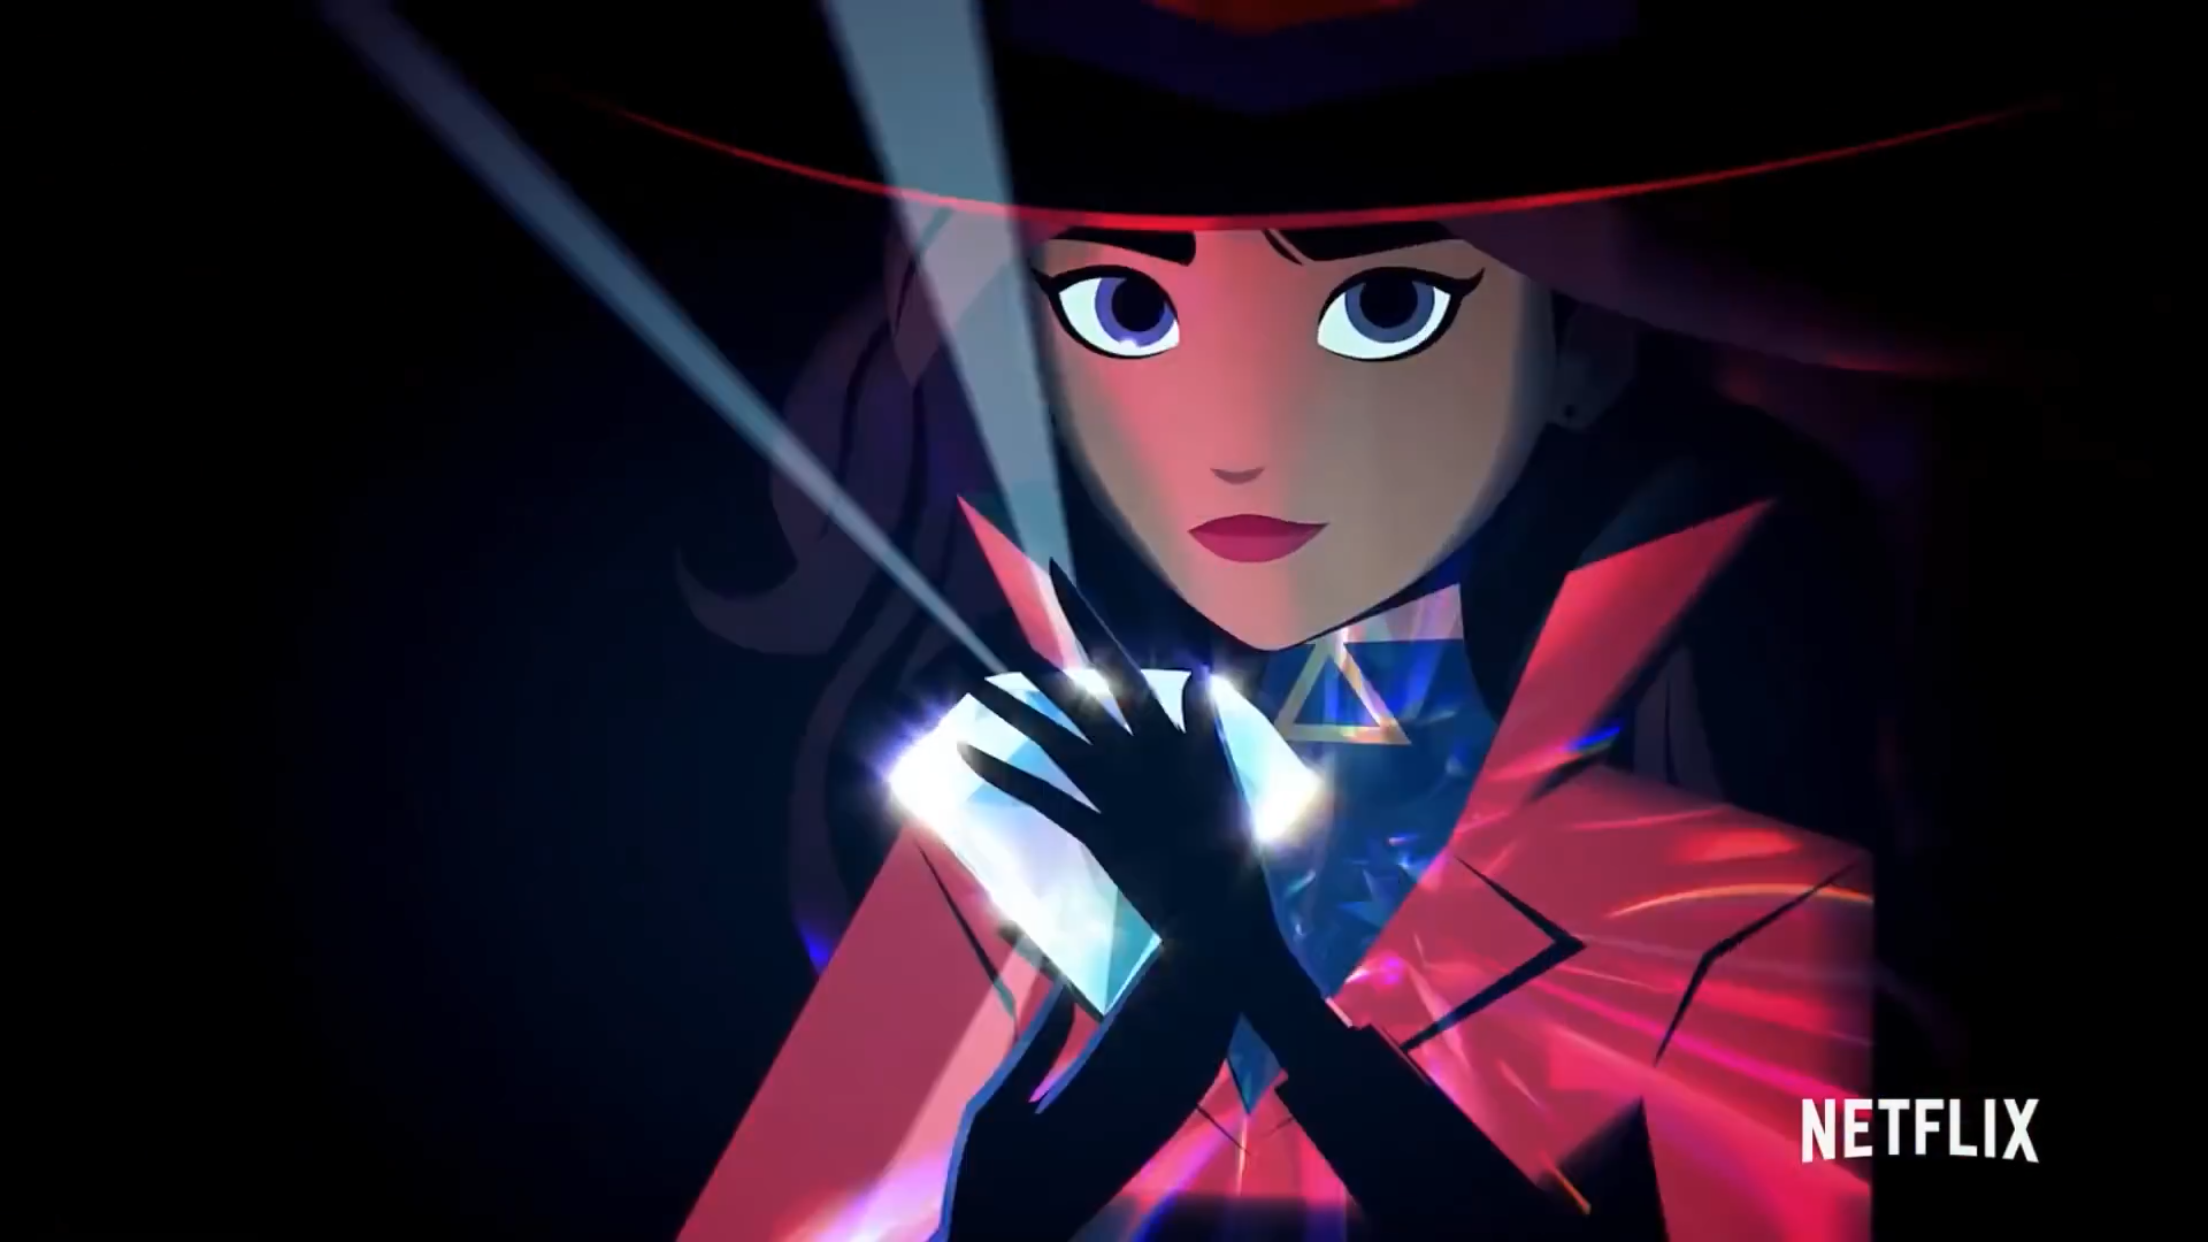 Pin By The Outsider24 On Carmen Sandiego Carmen Sandiego Carmen Sandiago Female Characters